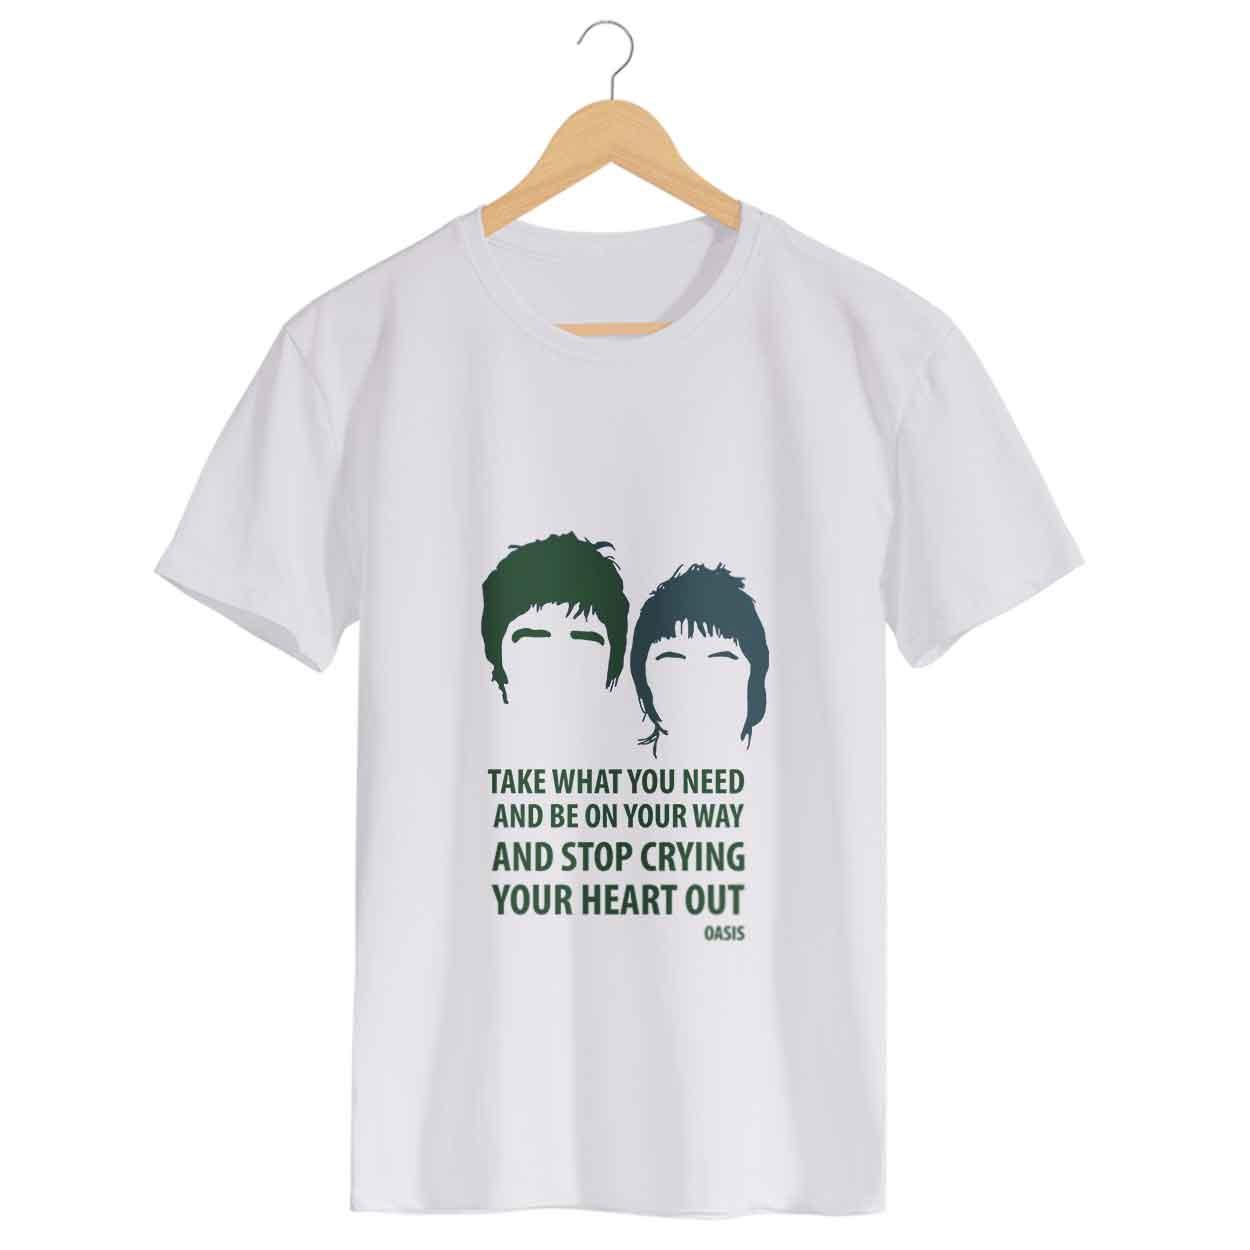 Camiseta - Stop Crying Your Heart Out - Oasis - Masculino